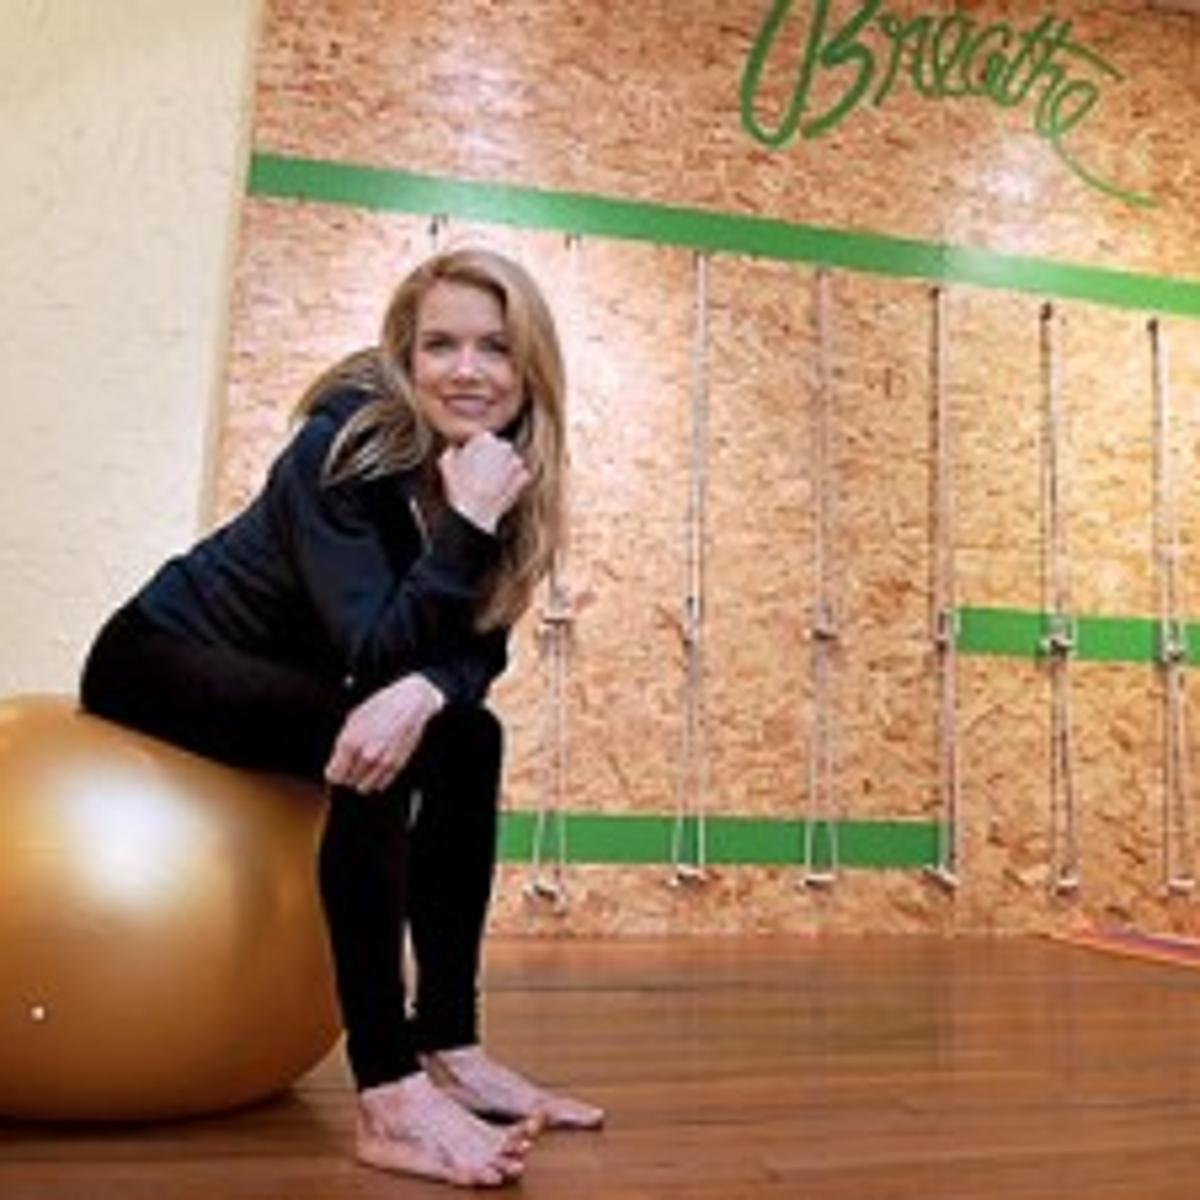 Fitness Expert Credits Preparation For Her Success Local Idahostatejournal Com